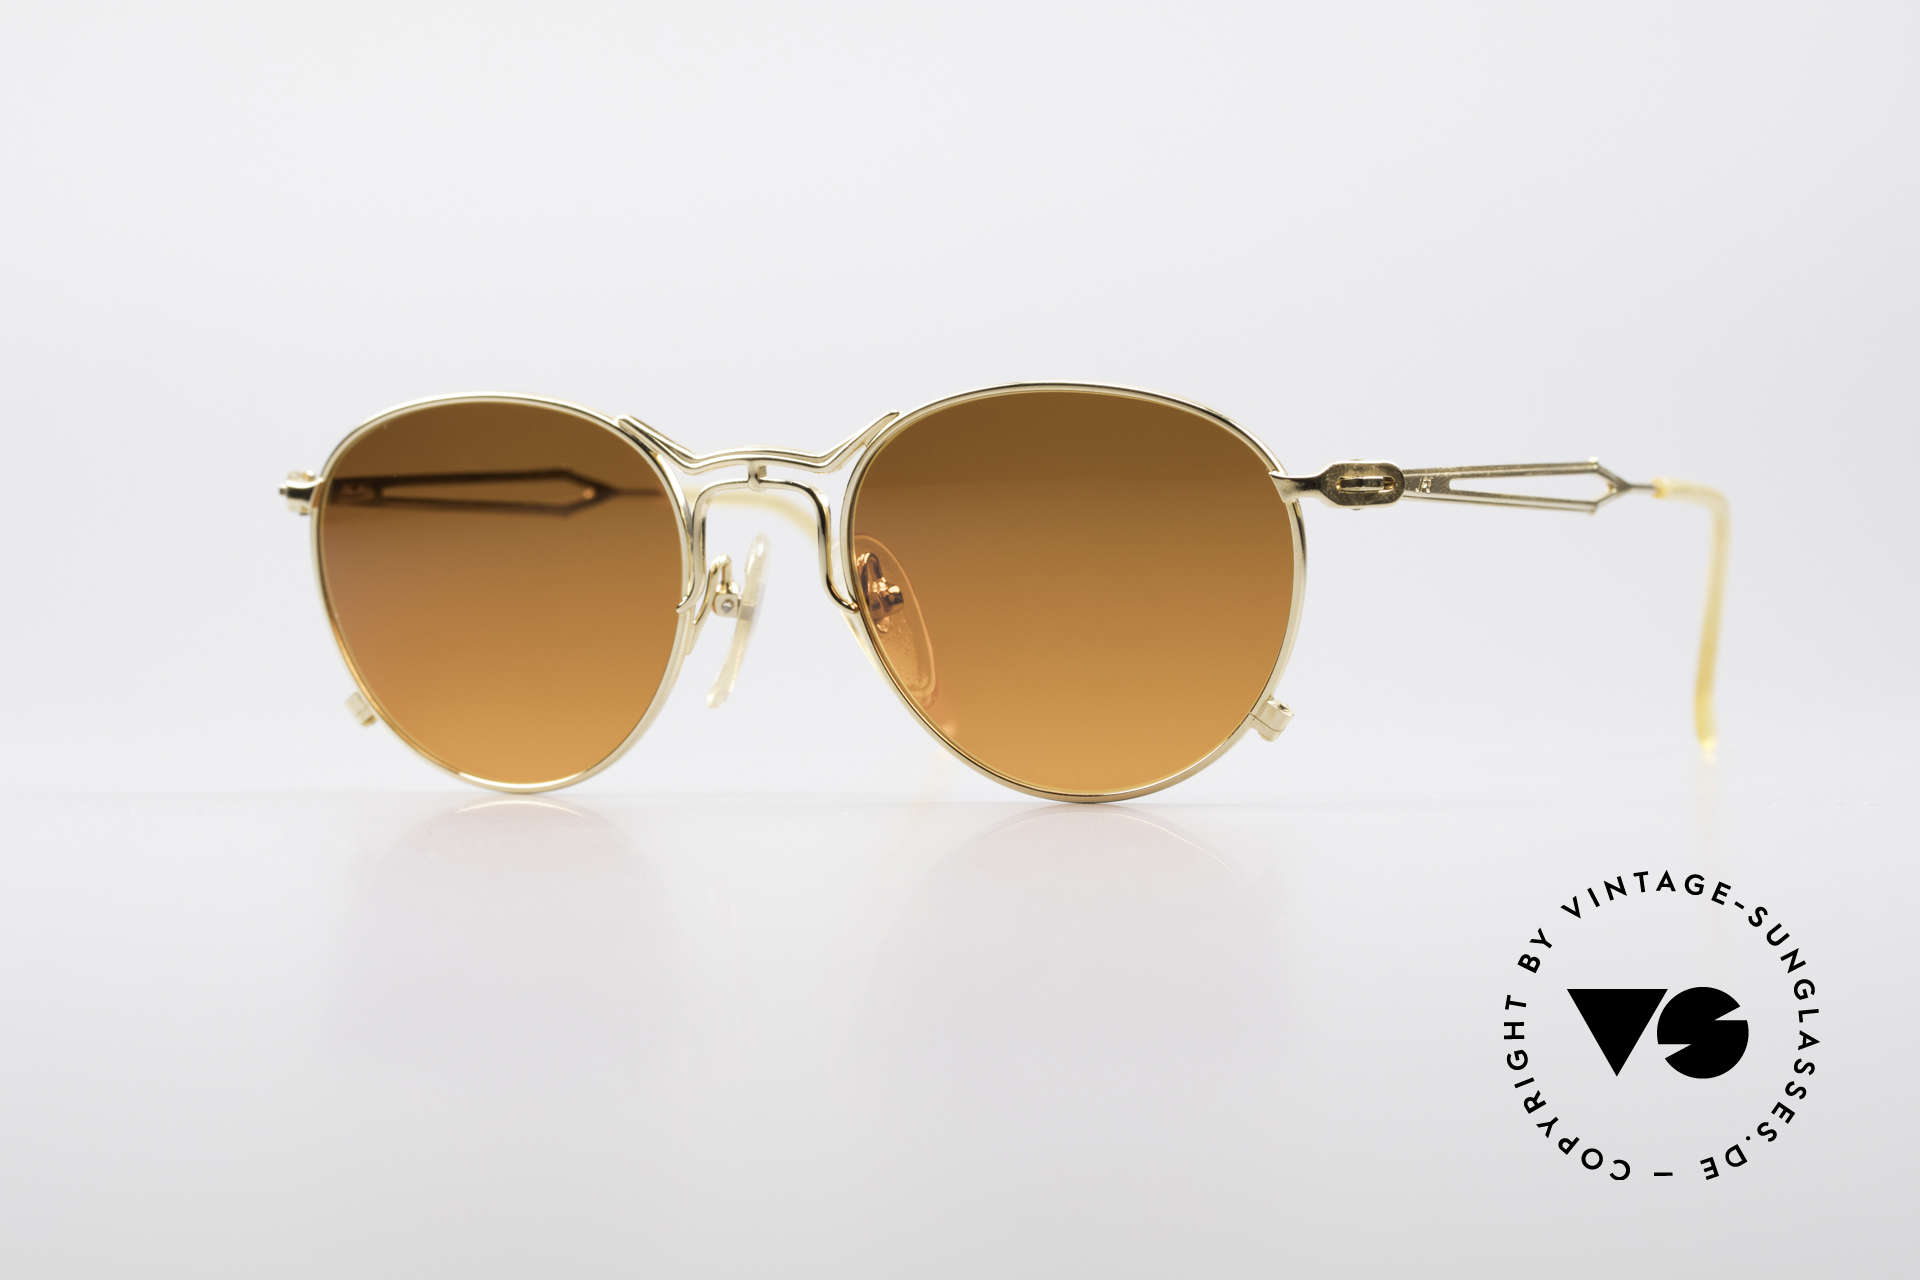 Jean Paul Gaultier 55-2177 Gold Plated Designer Frame, extraordinary vintage J.P. Gaultier designer sunglasses, Made for Men and Women